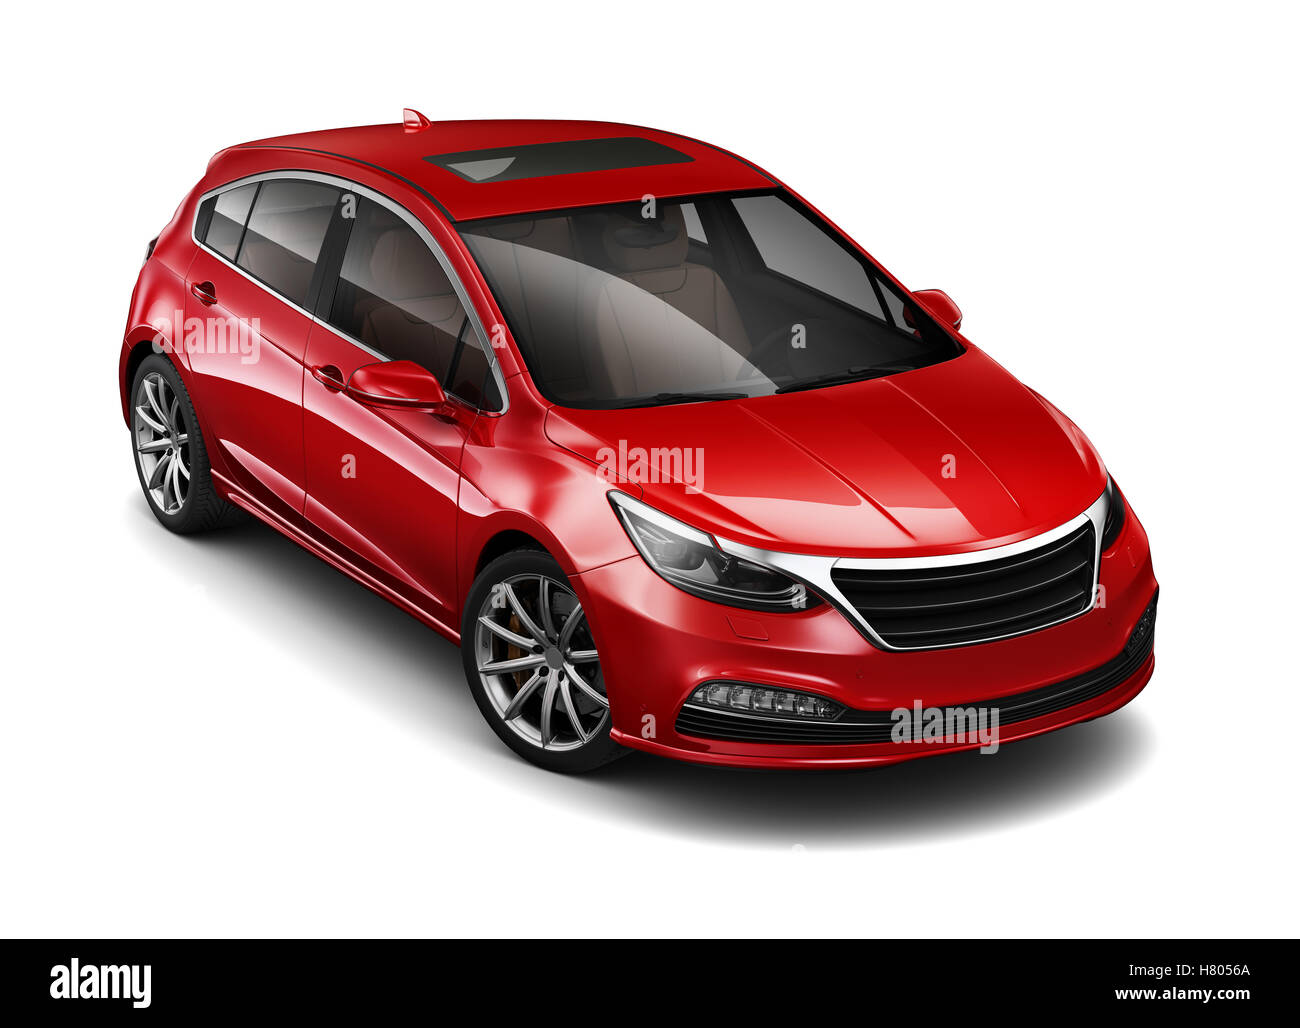 Red hatchback car - Stock Image